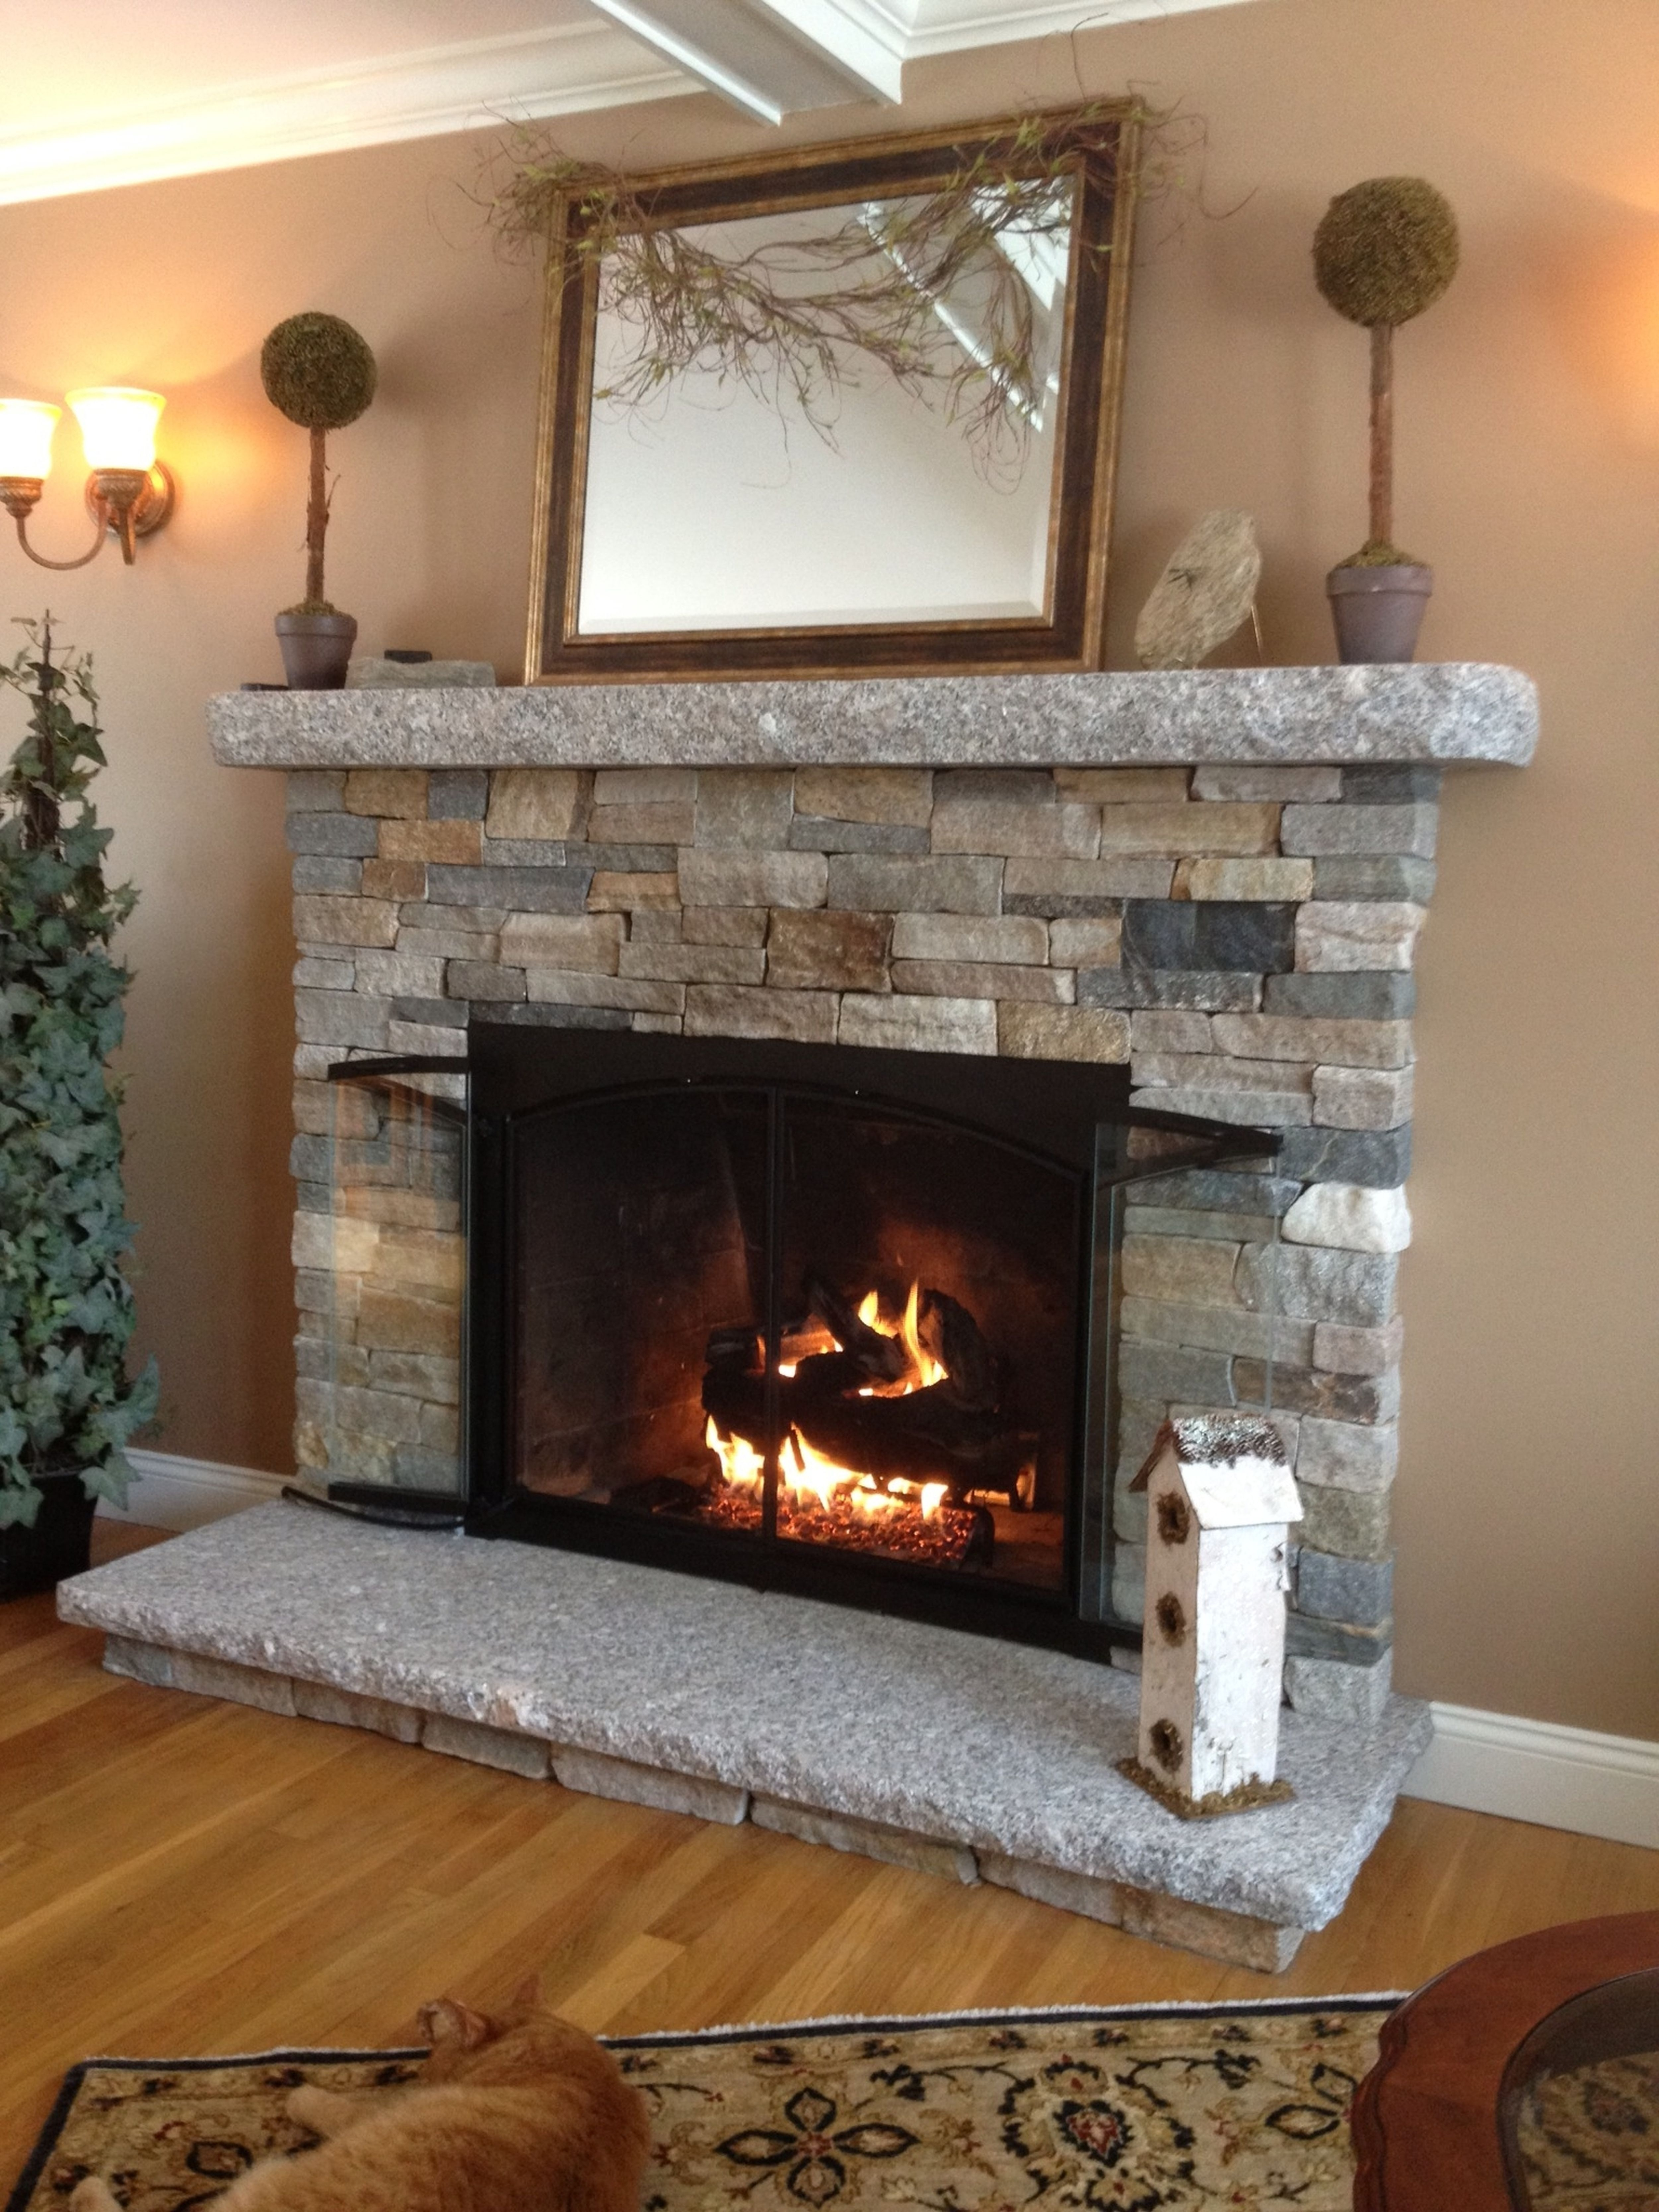 Gorgoeus Rustic Stone Fireplace With Christmas Décor 27